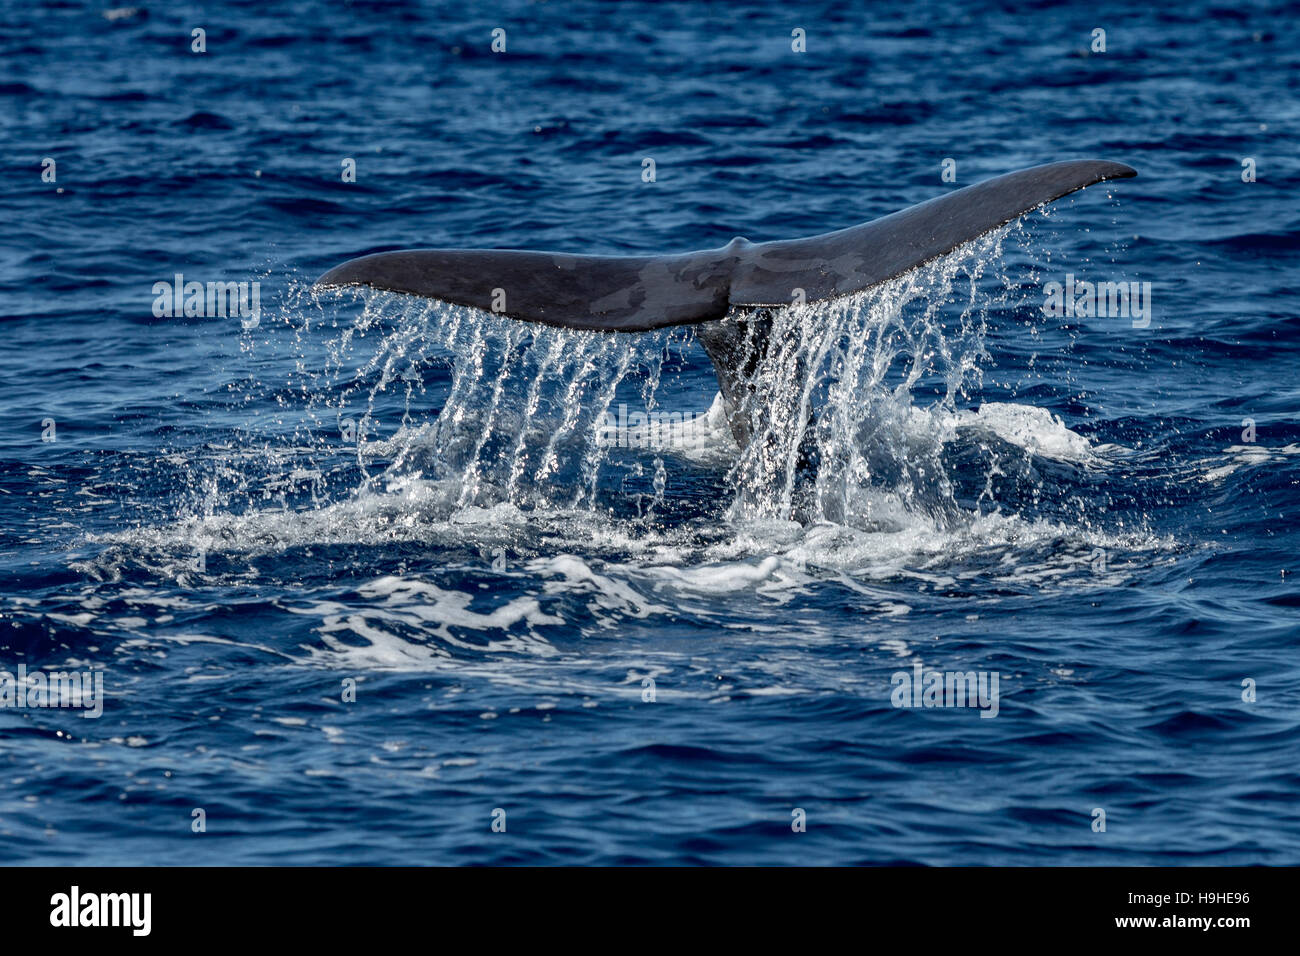 Whale Tail in Blue Ocean (Physeter macrocephalus) - Stock Image